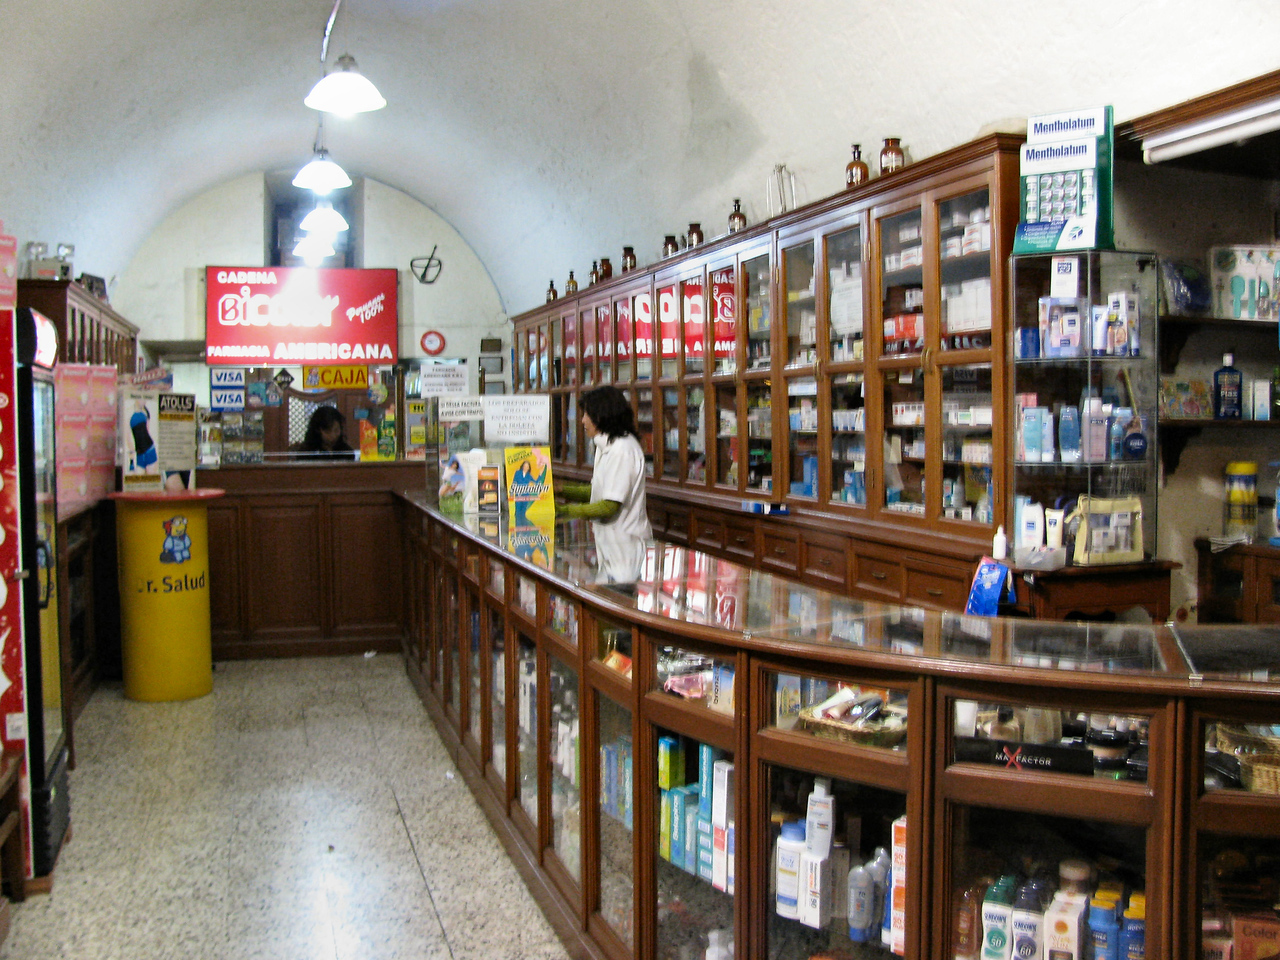 Una farmacia tradicional, como las de antes.<br /> <br /> An old fashion pharmacy, like the ones in the old times.